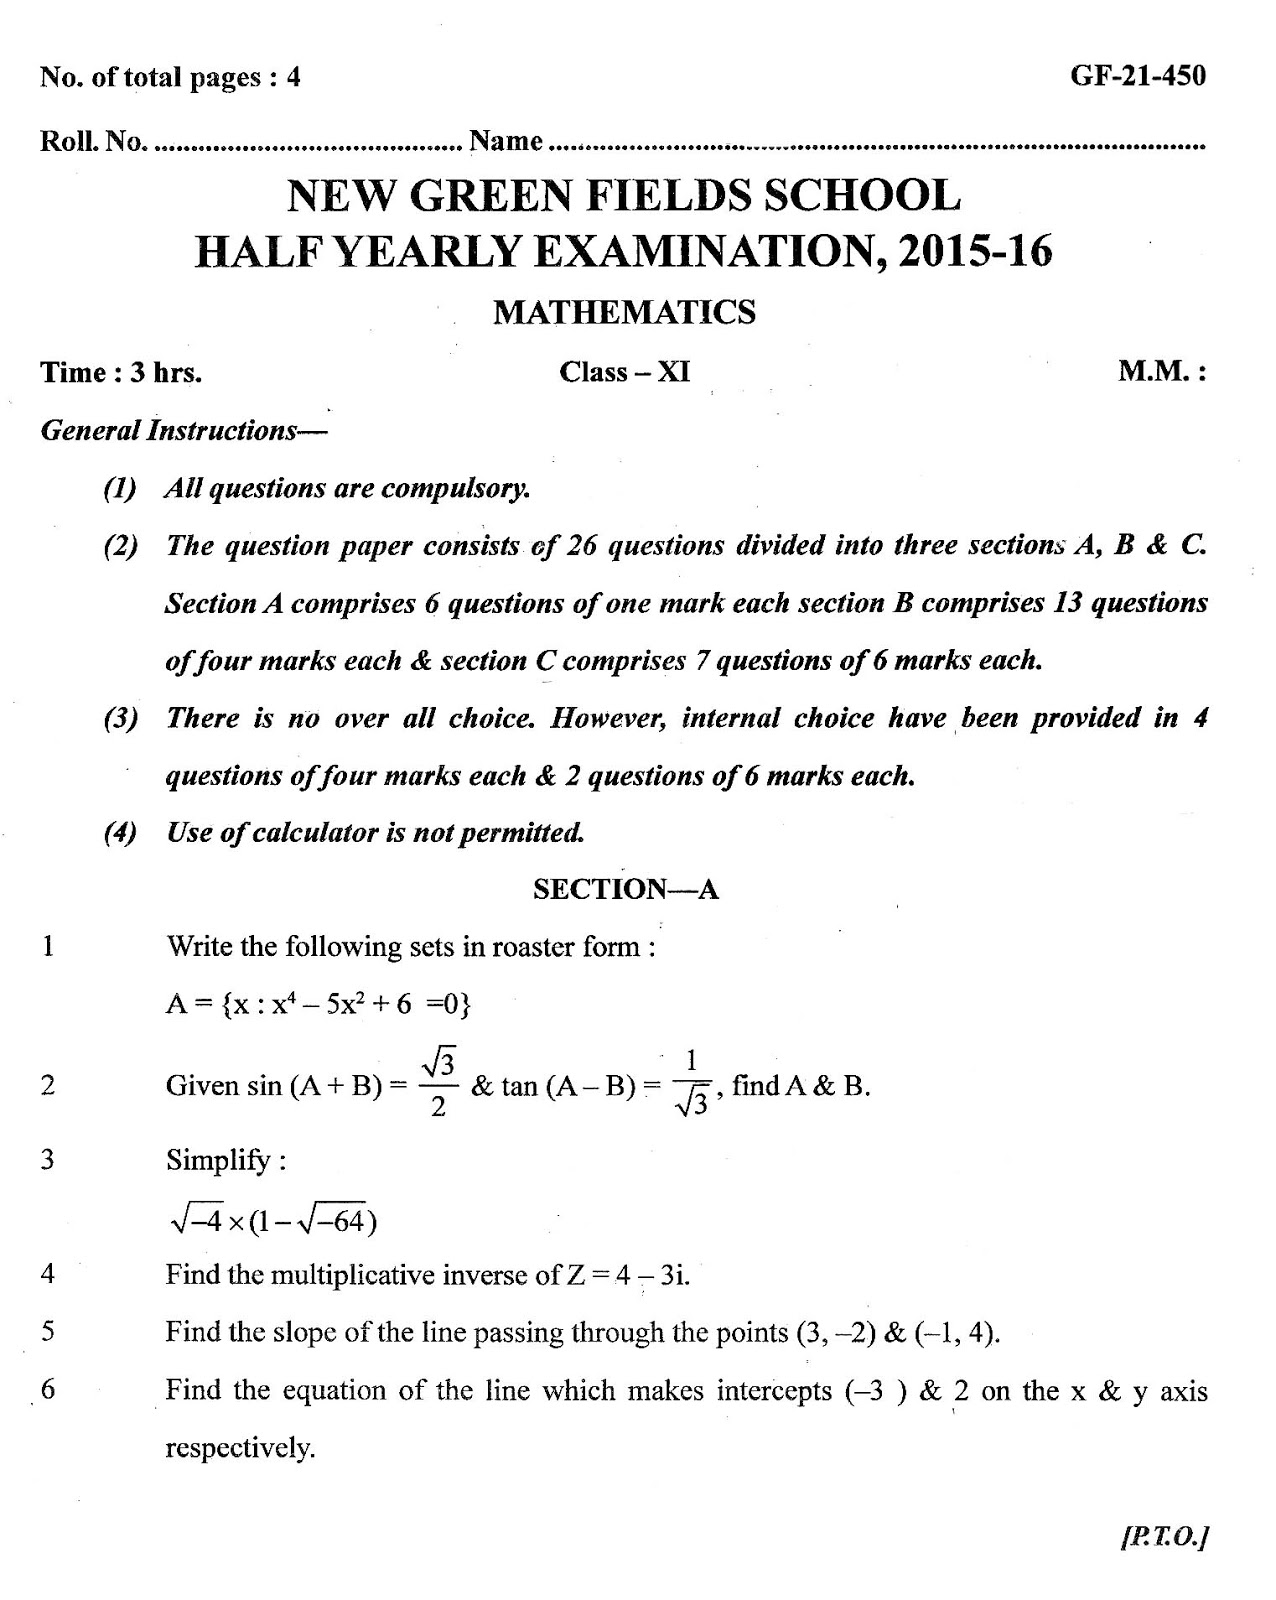 Maths4all: Class XI Mathematics NEW GREEN FIELDS SCHOOL Half yearly ...